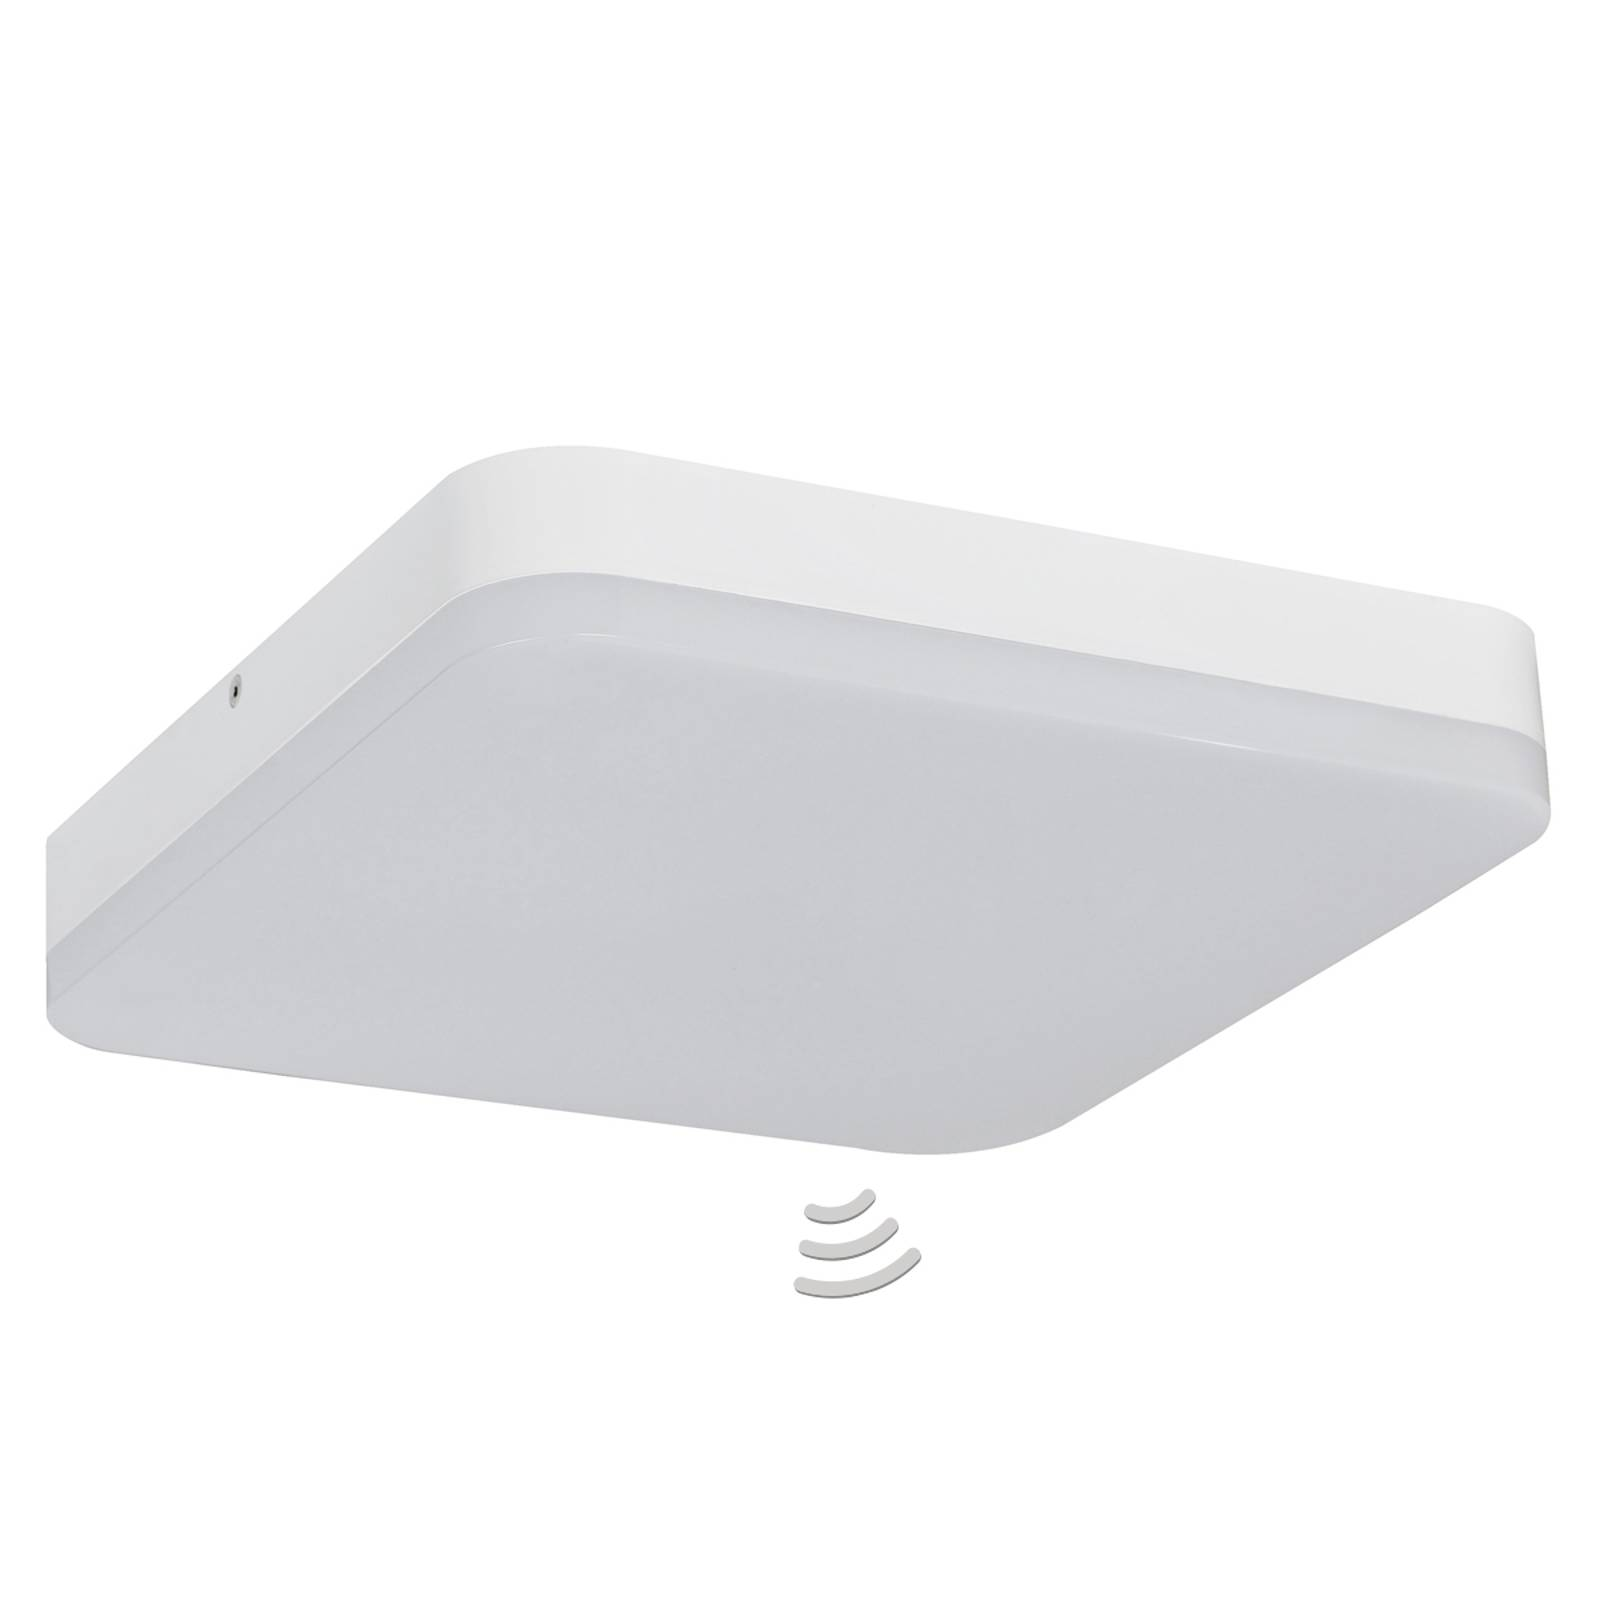 With sensor - LED ceiling lamp Office Square from Starlicht